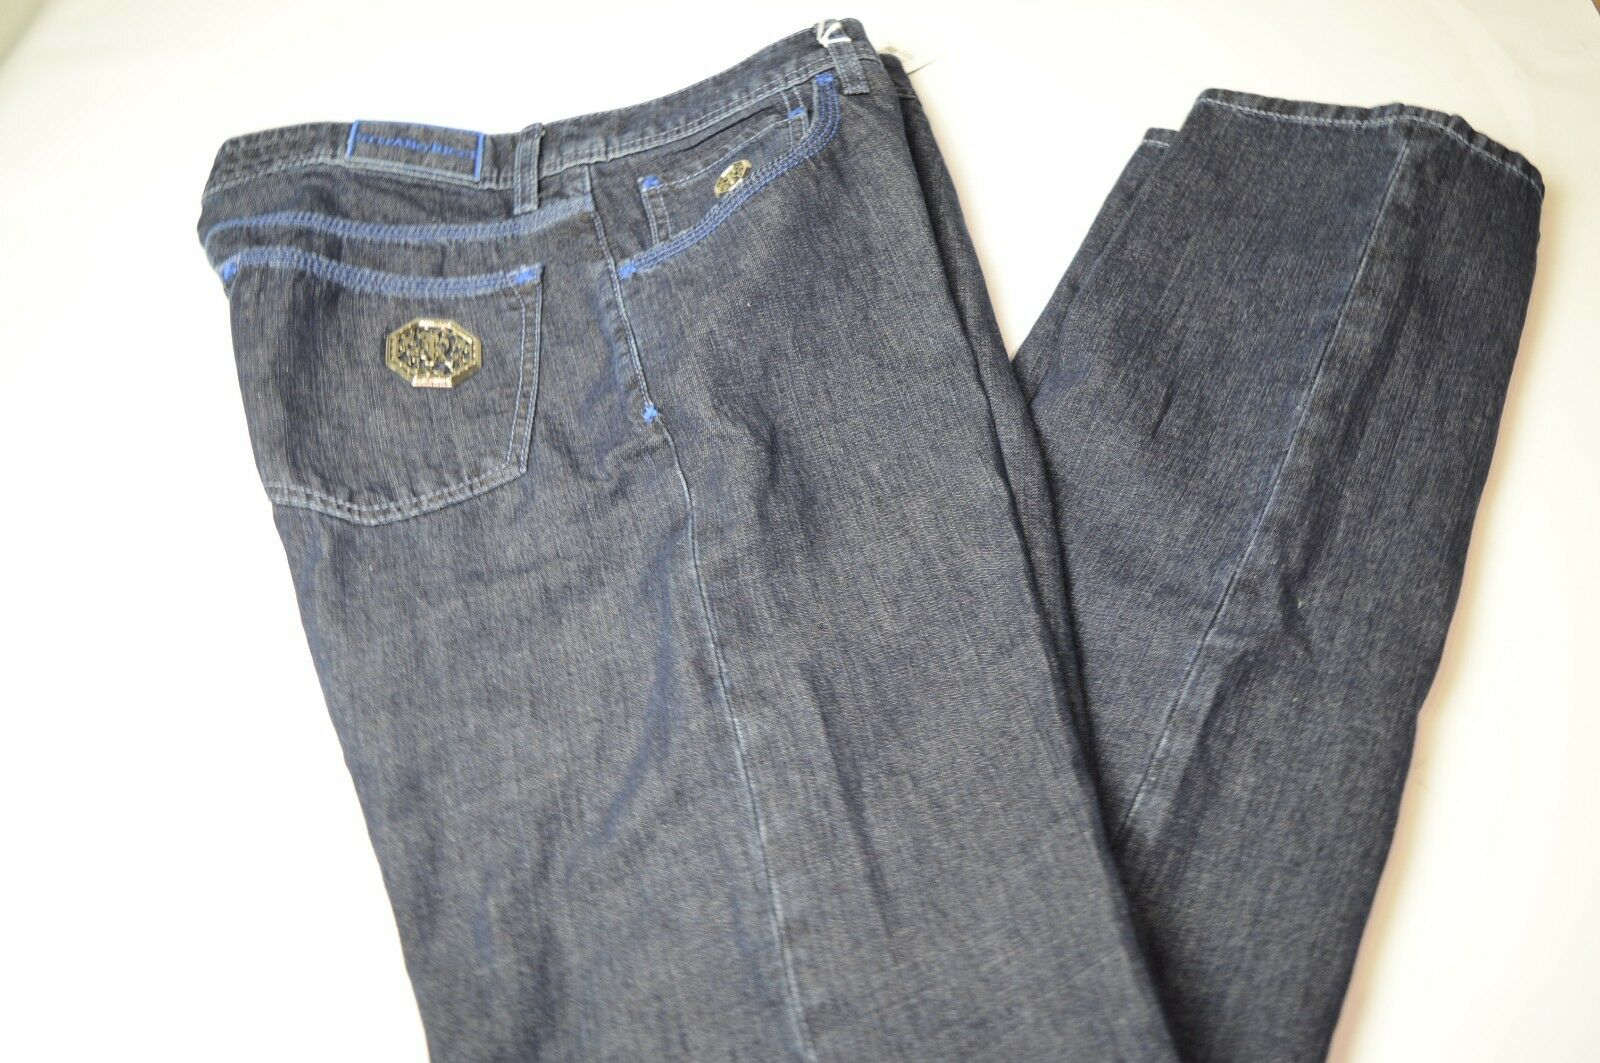 NEW STEFANO RICCI  Luxury Jeans  Size 33 Us 49 Eu  Made in ITALY (78A)